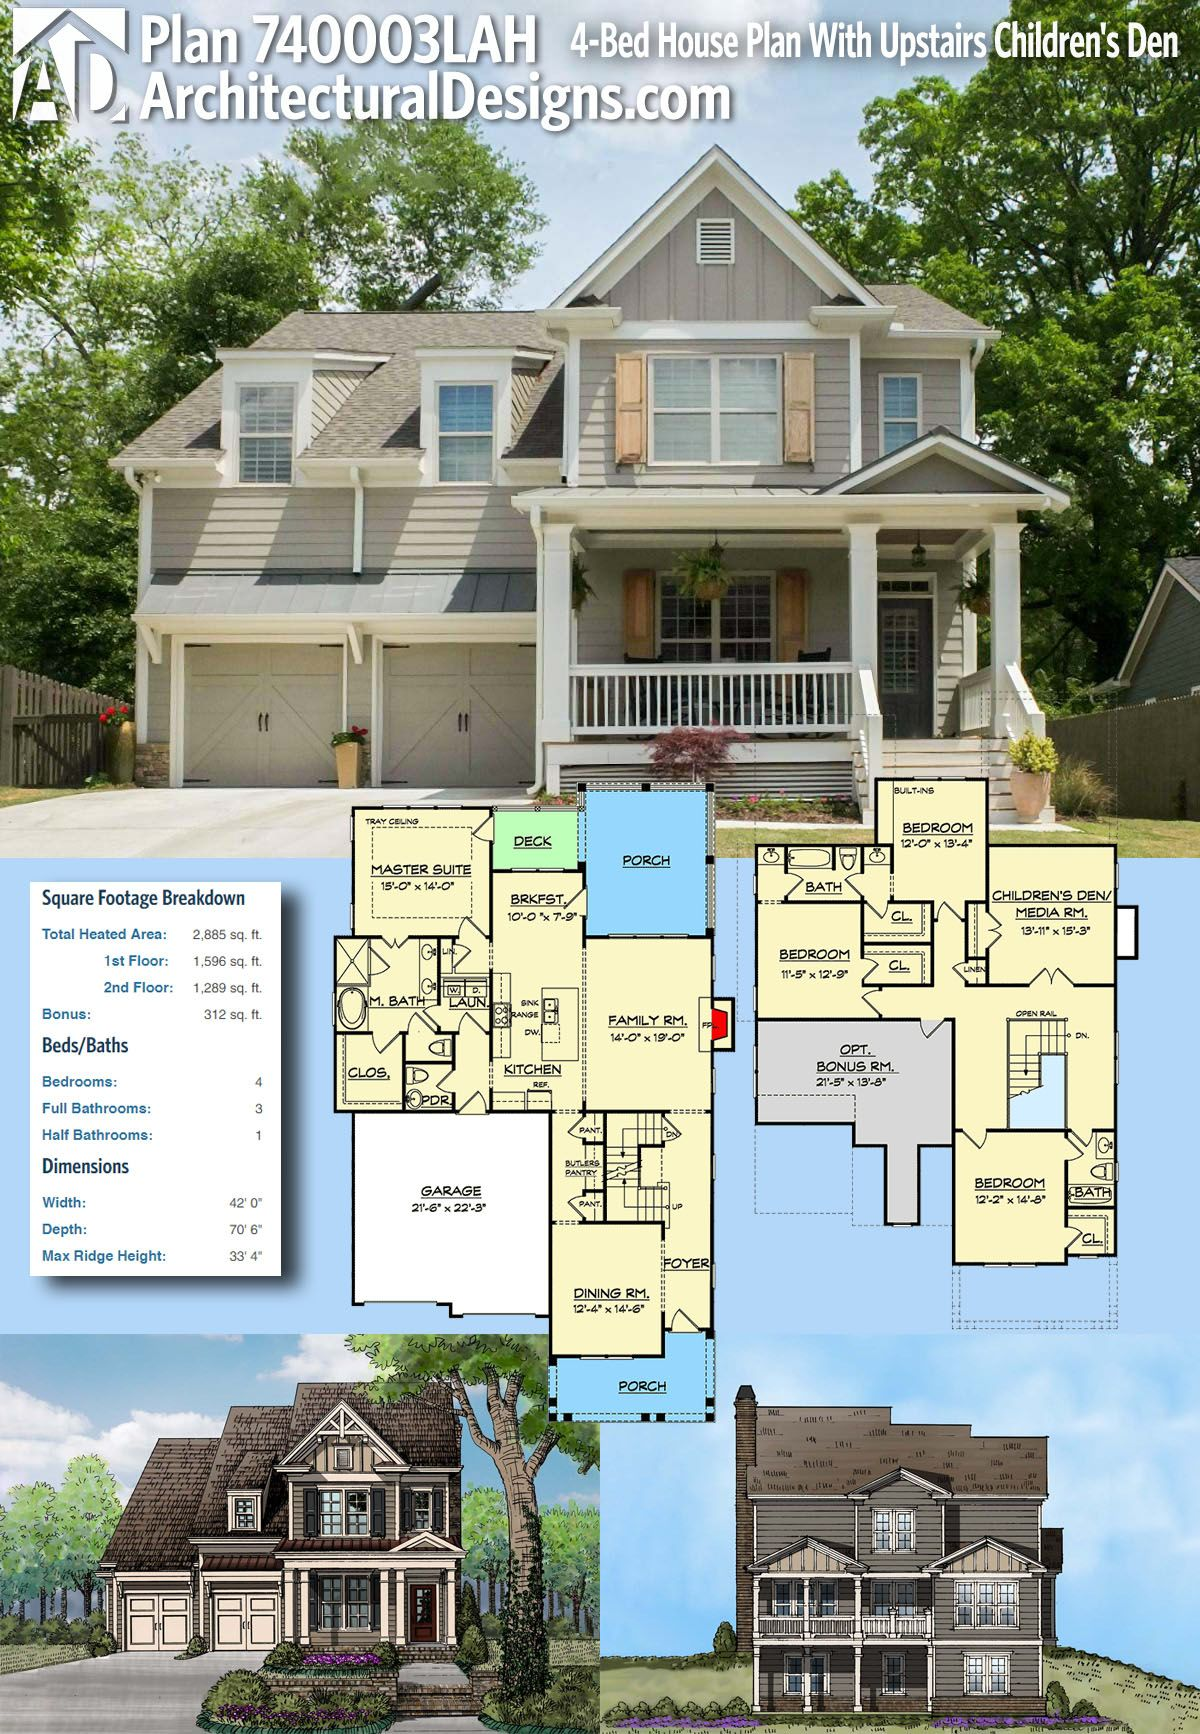 Plan 740003LAH 4 Bed House Plan With Upstairs